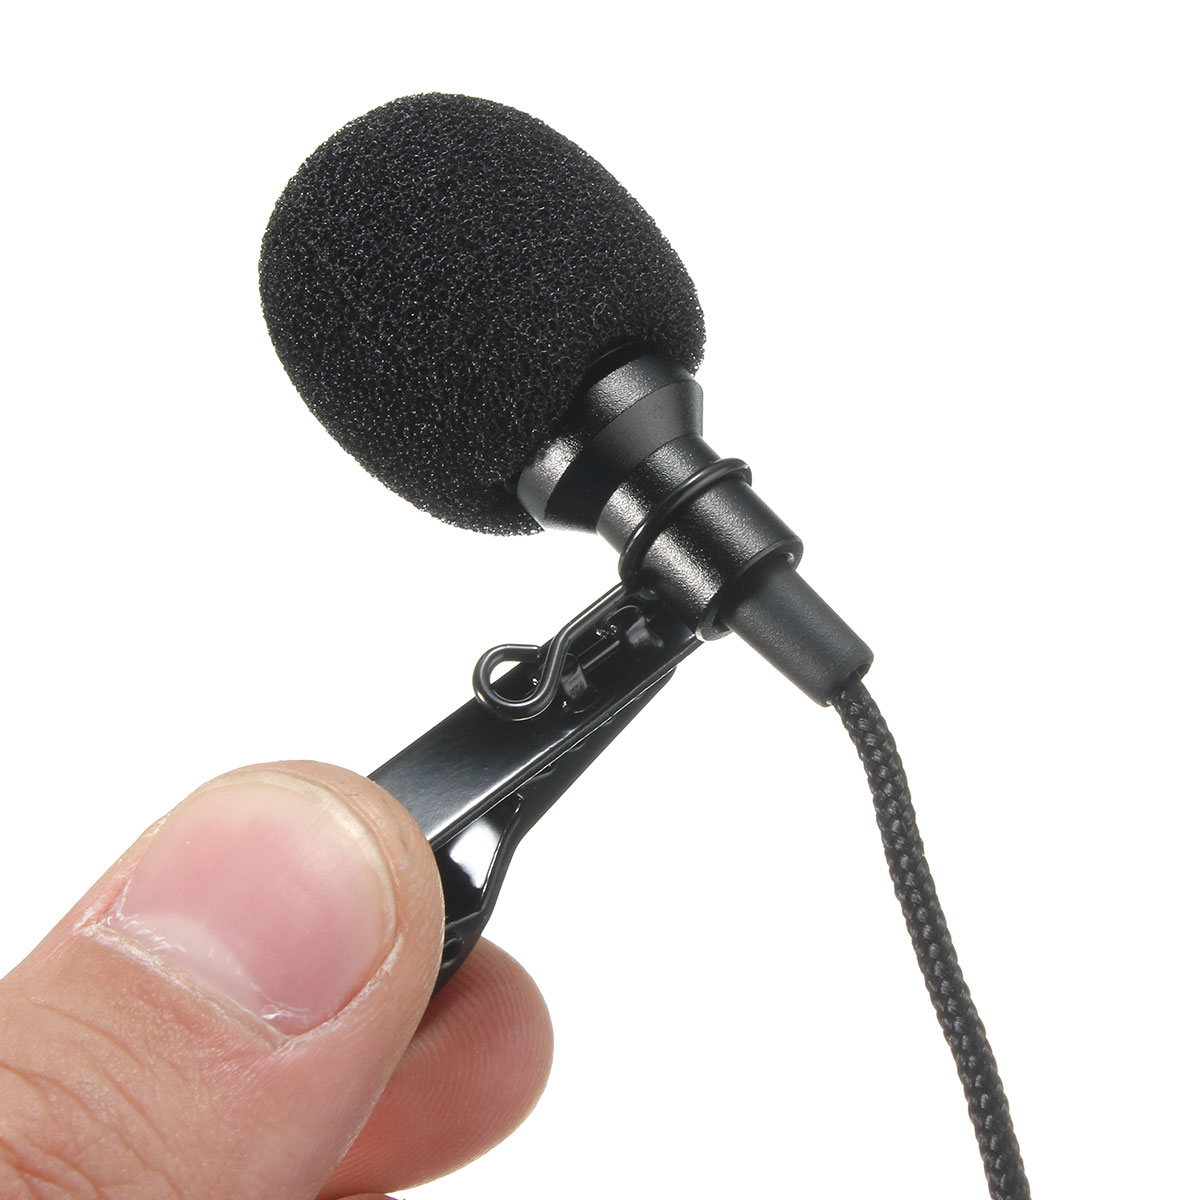 Mini 3.5mm Jack Microphone Lavalier Tie Clip Microphones Mic For Speaking Speech Lectures 2.4m